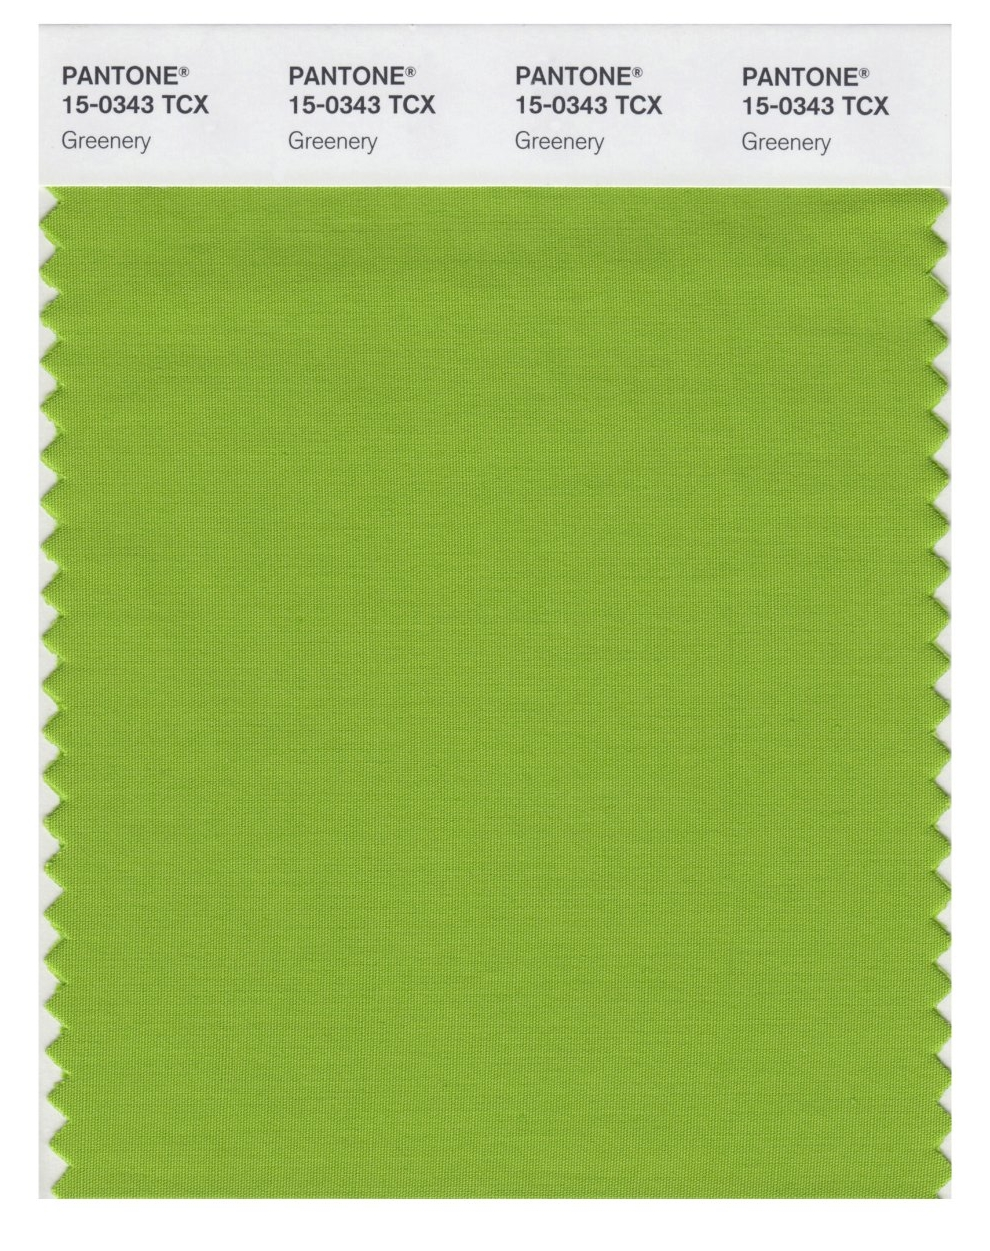 """This image released by Pantone shows a color swatch called """"greenery"""", which has been named as the color of the year for 2017 by the Pantone Color Institute. The vibrant green with yellow undertones is an answer, of sorts, to bruising 2016, signaling a yearning to rejuvenate, and to reconnect to both nature and something larger than oneself, said Laurie Pressman, the institute's vice president. (Pantone via AP)"""